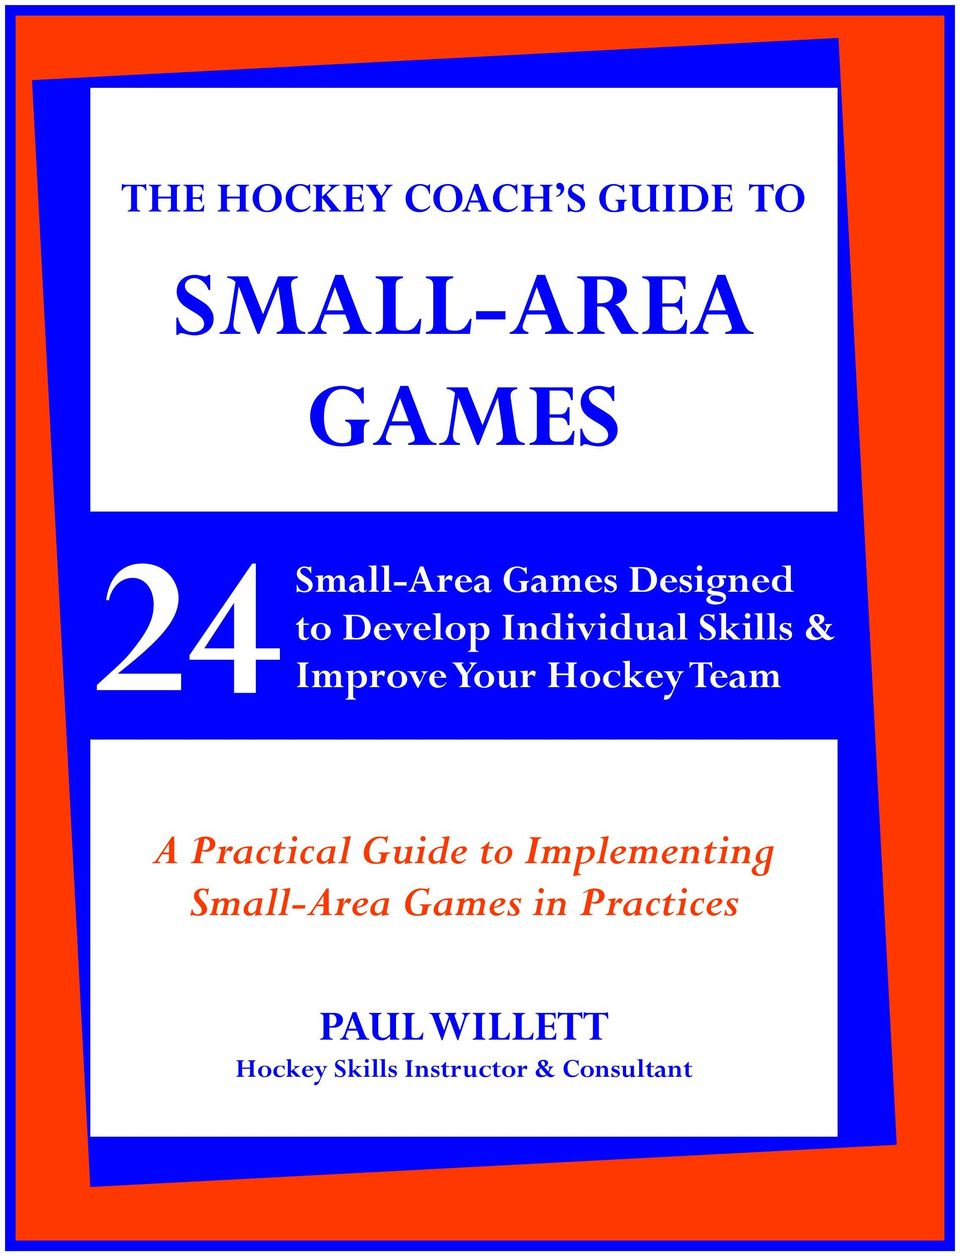 Hockey Team A Practical Guide to Implementing Small-Area